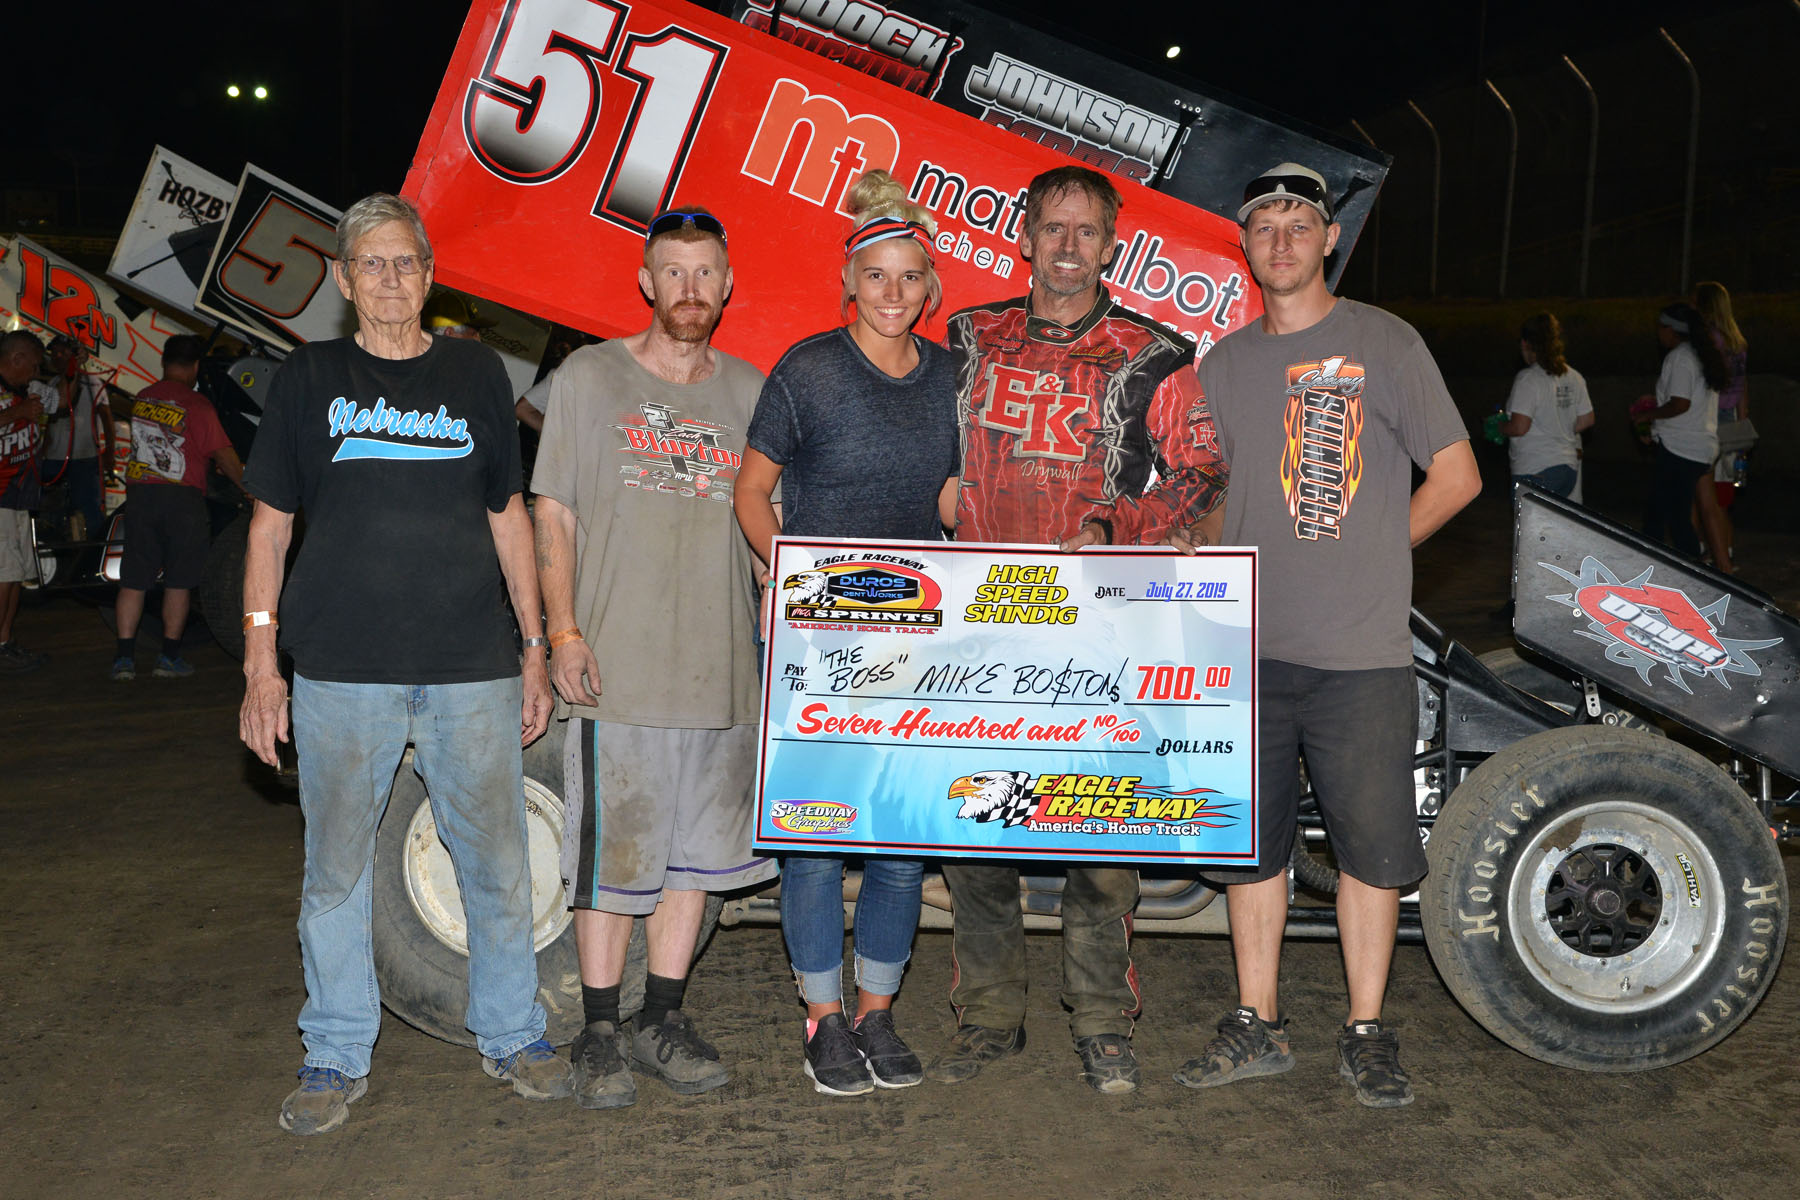 Boston captures win at Eagle Raceway July 27th